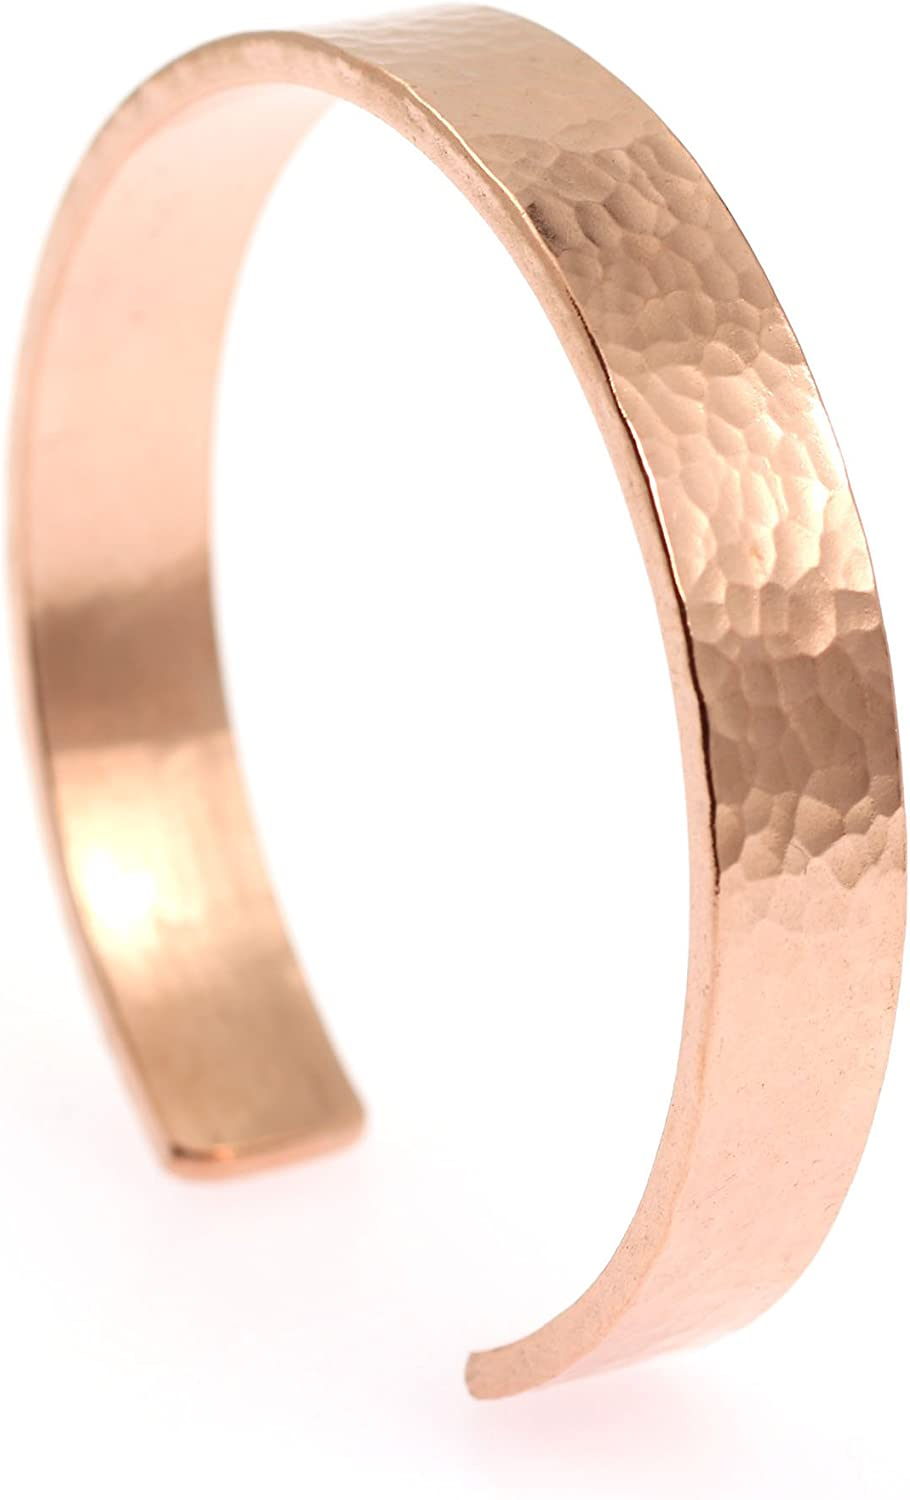 10mm Wide Hammered Copper Cuff Bracelet Credence Be super welcome J Brana By John Handmade